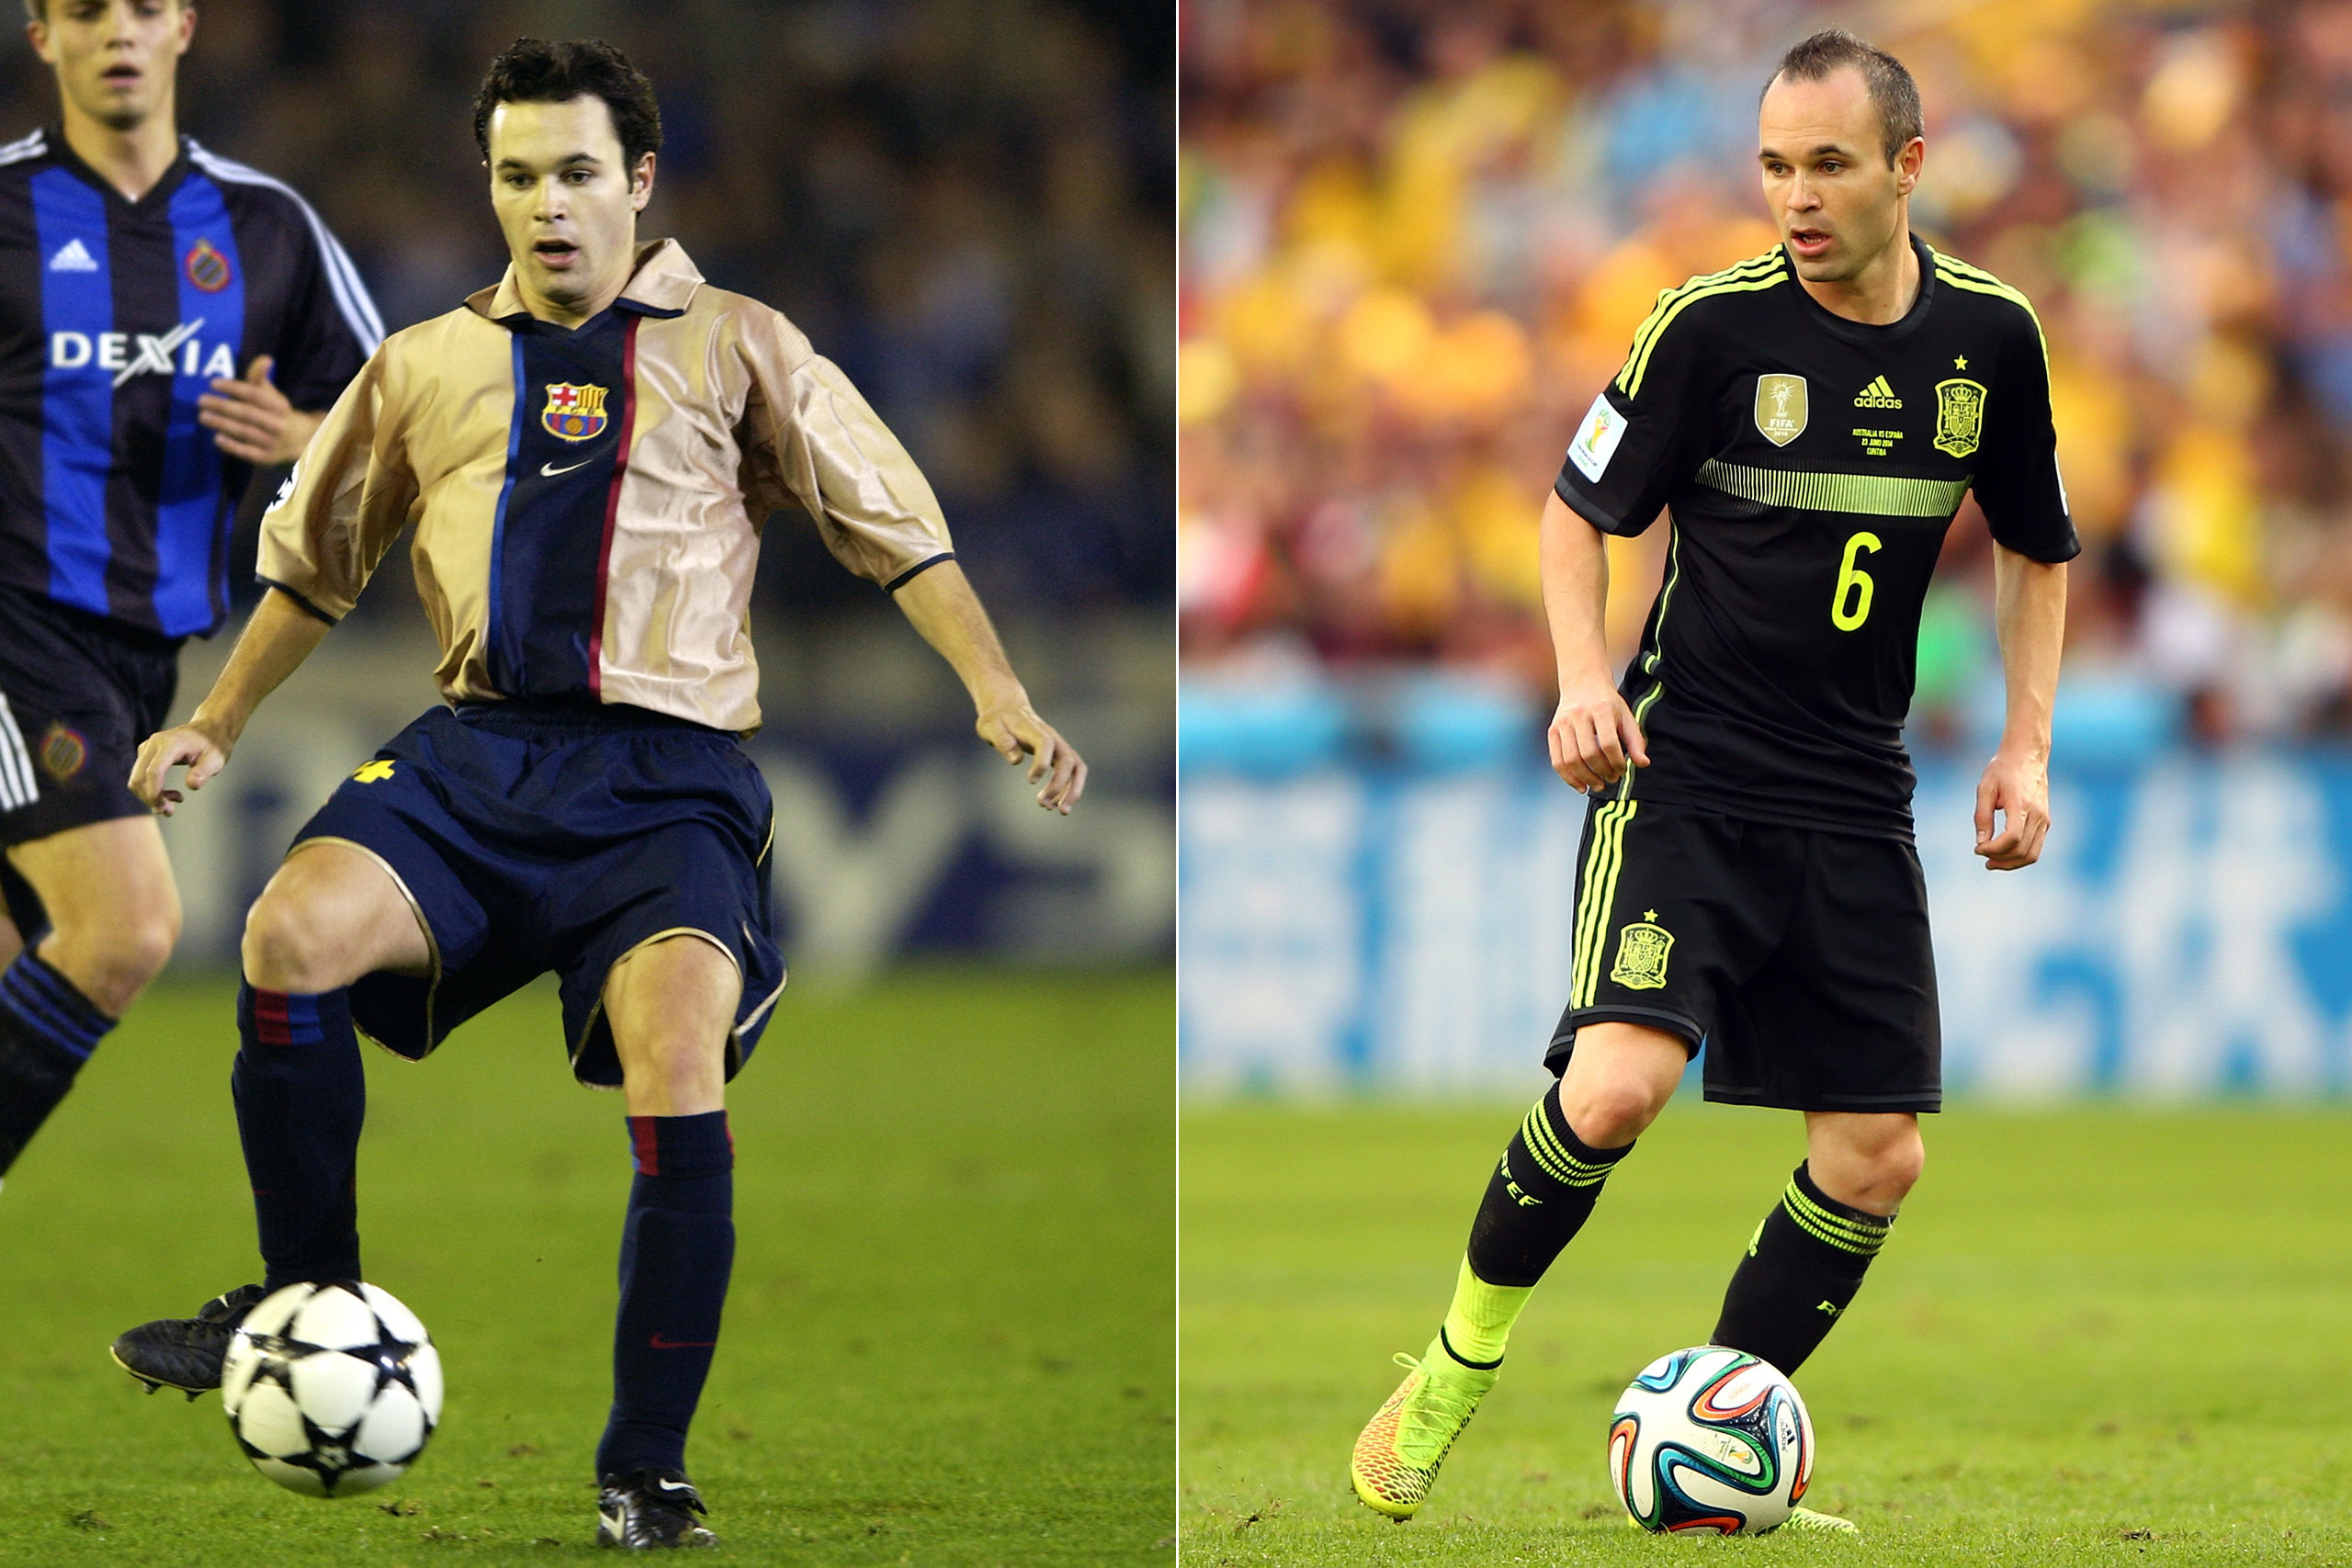 Left: Andres Iniesta in 2002; Right: Andres Iniesta playing for Spain at the FIFA World Cup in Brazil, 2014.